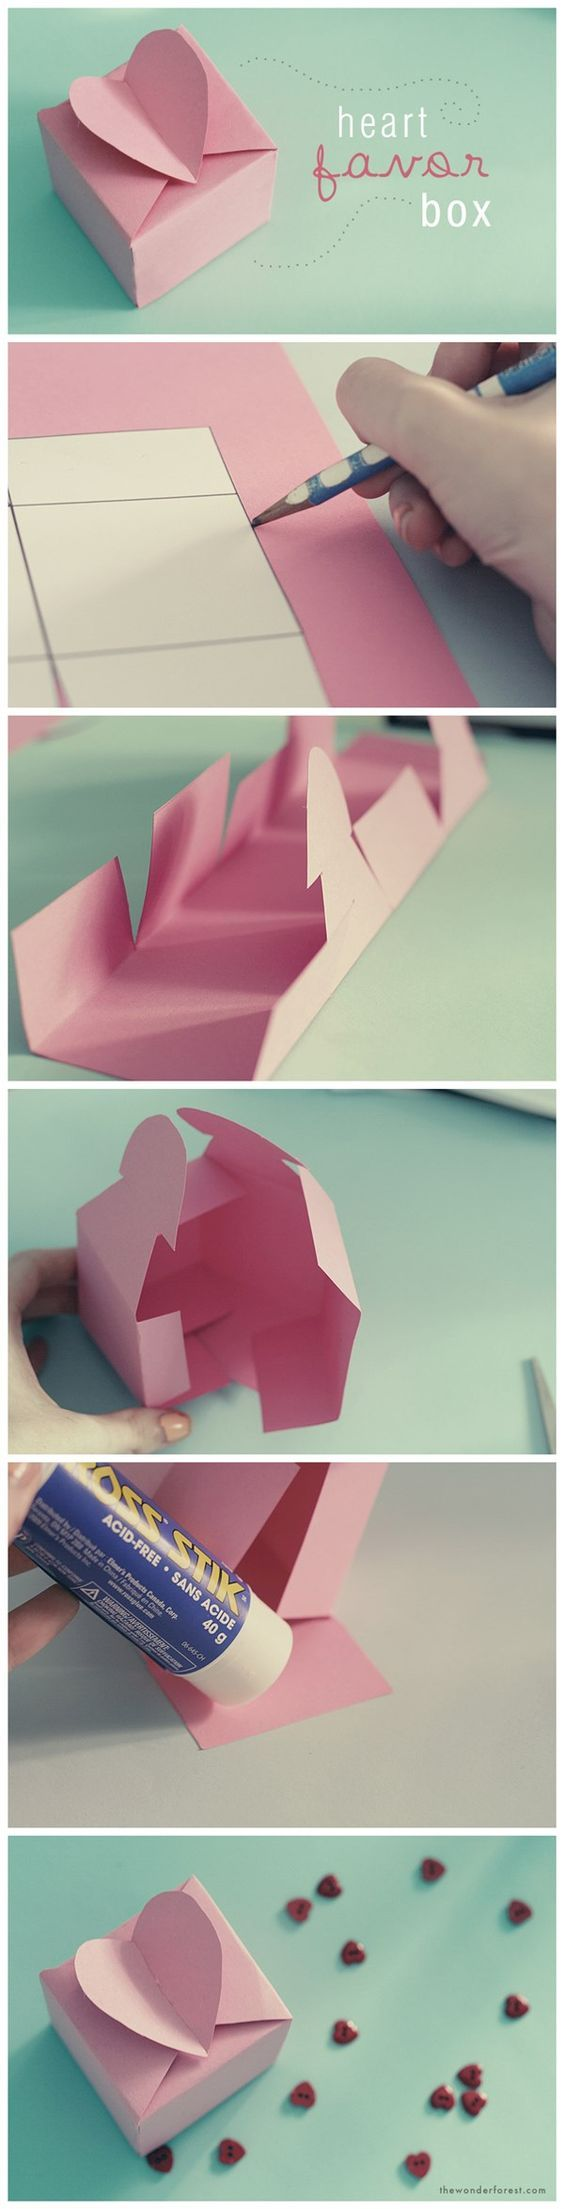 DIY Heart Favor Box Tutorial: